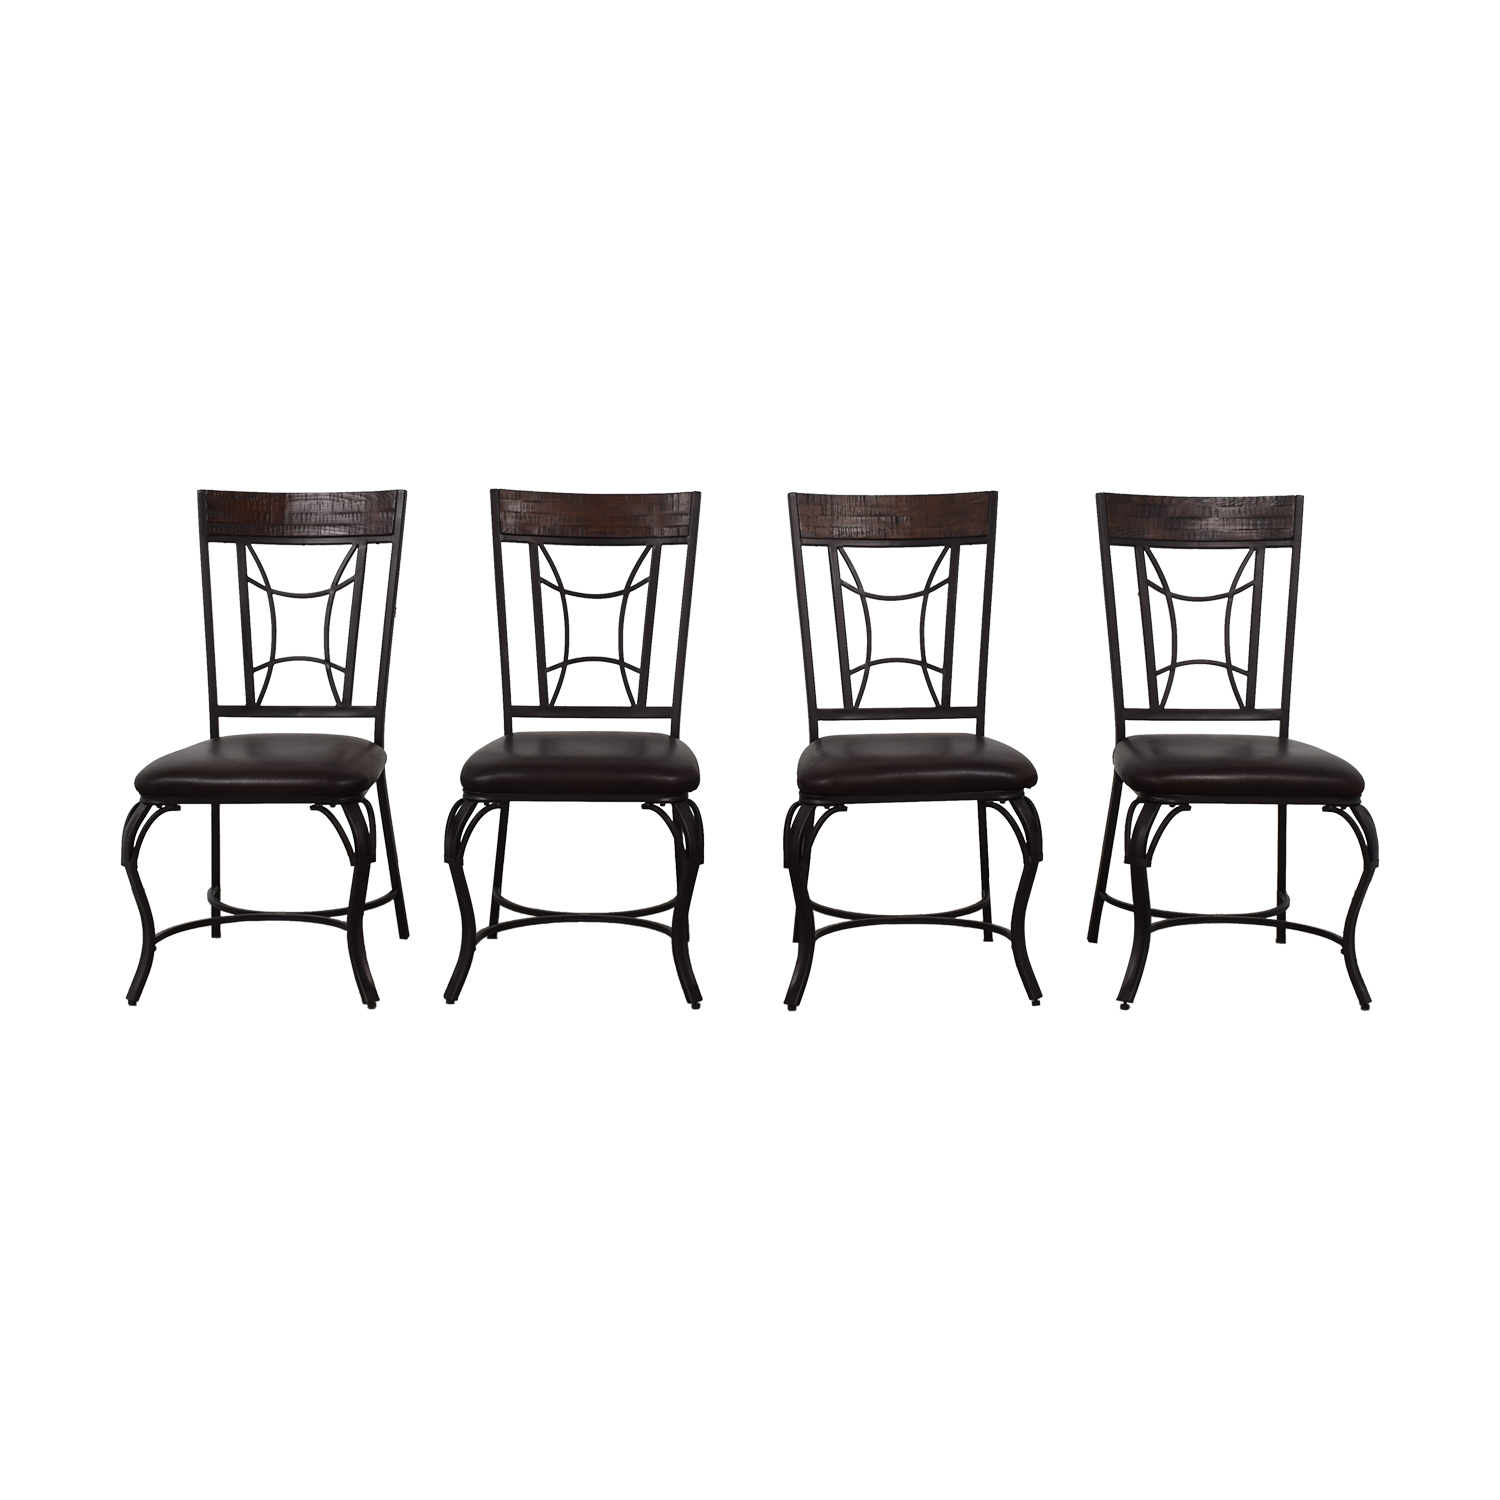 Hillsdale Furniture Hillsdale Furniture Dining Chairs dimensions